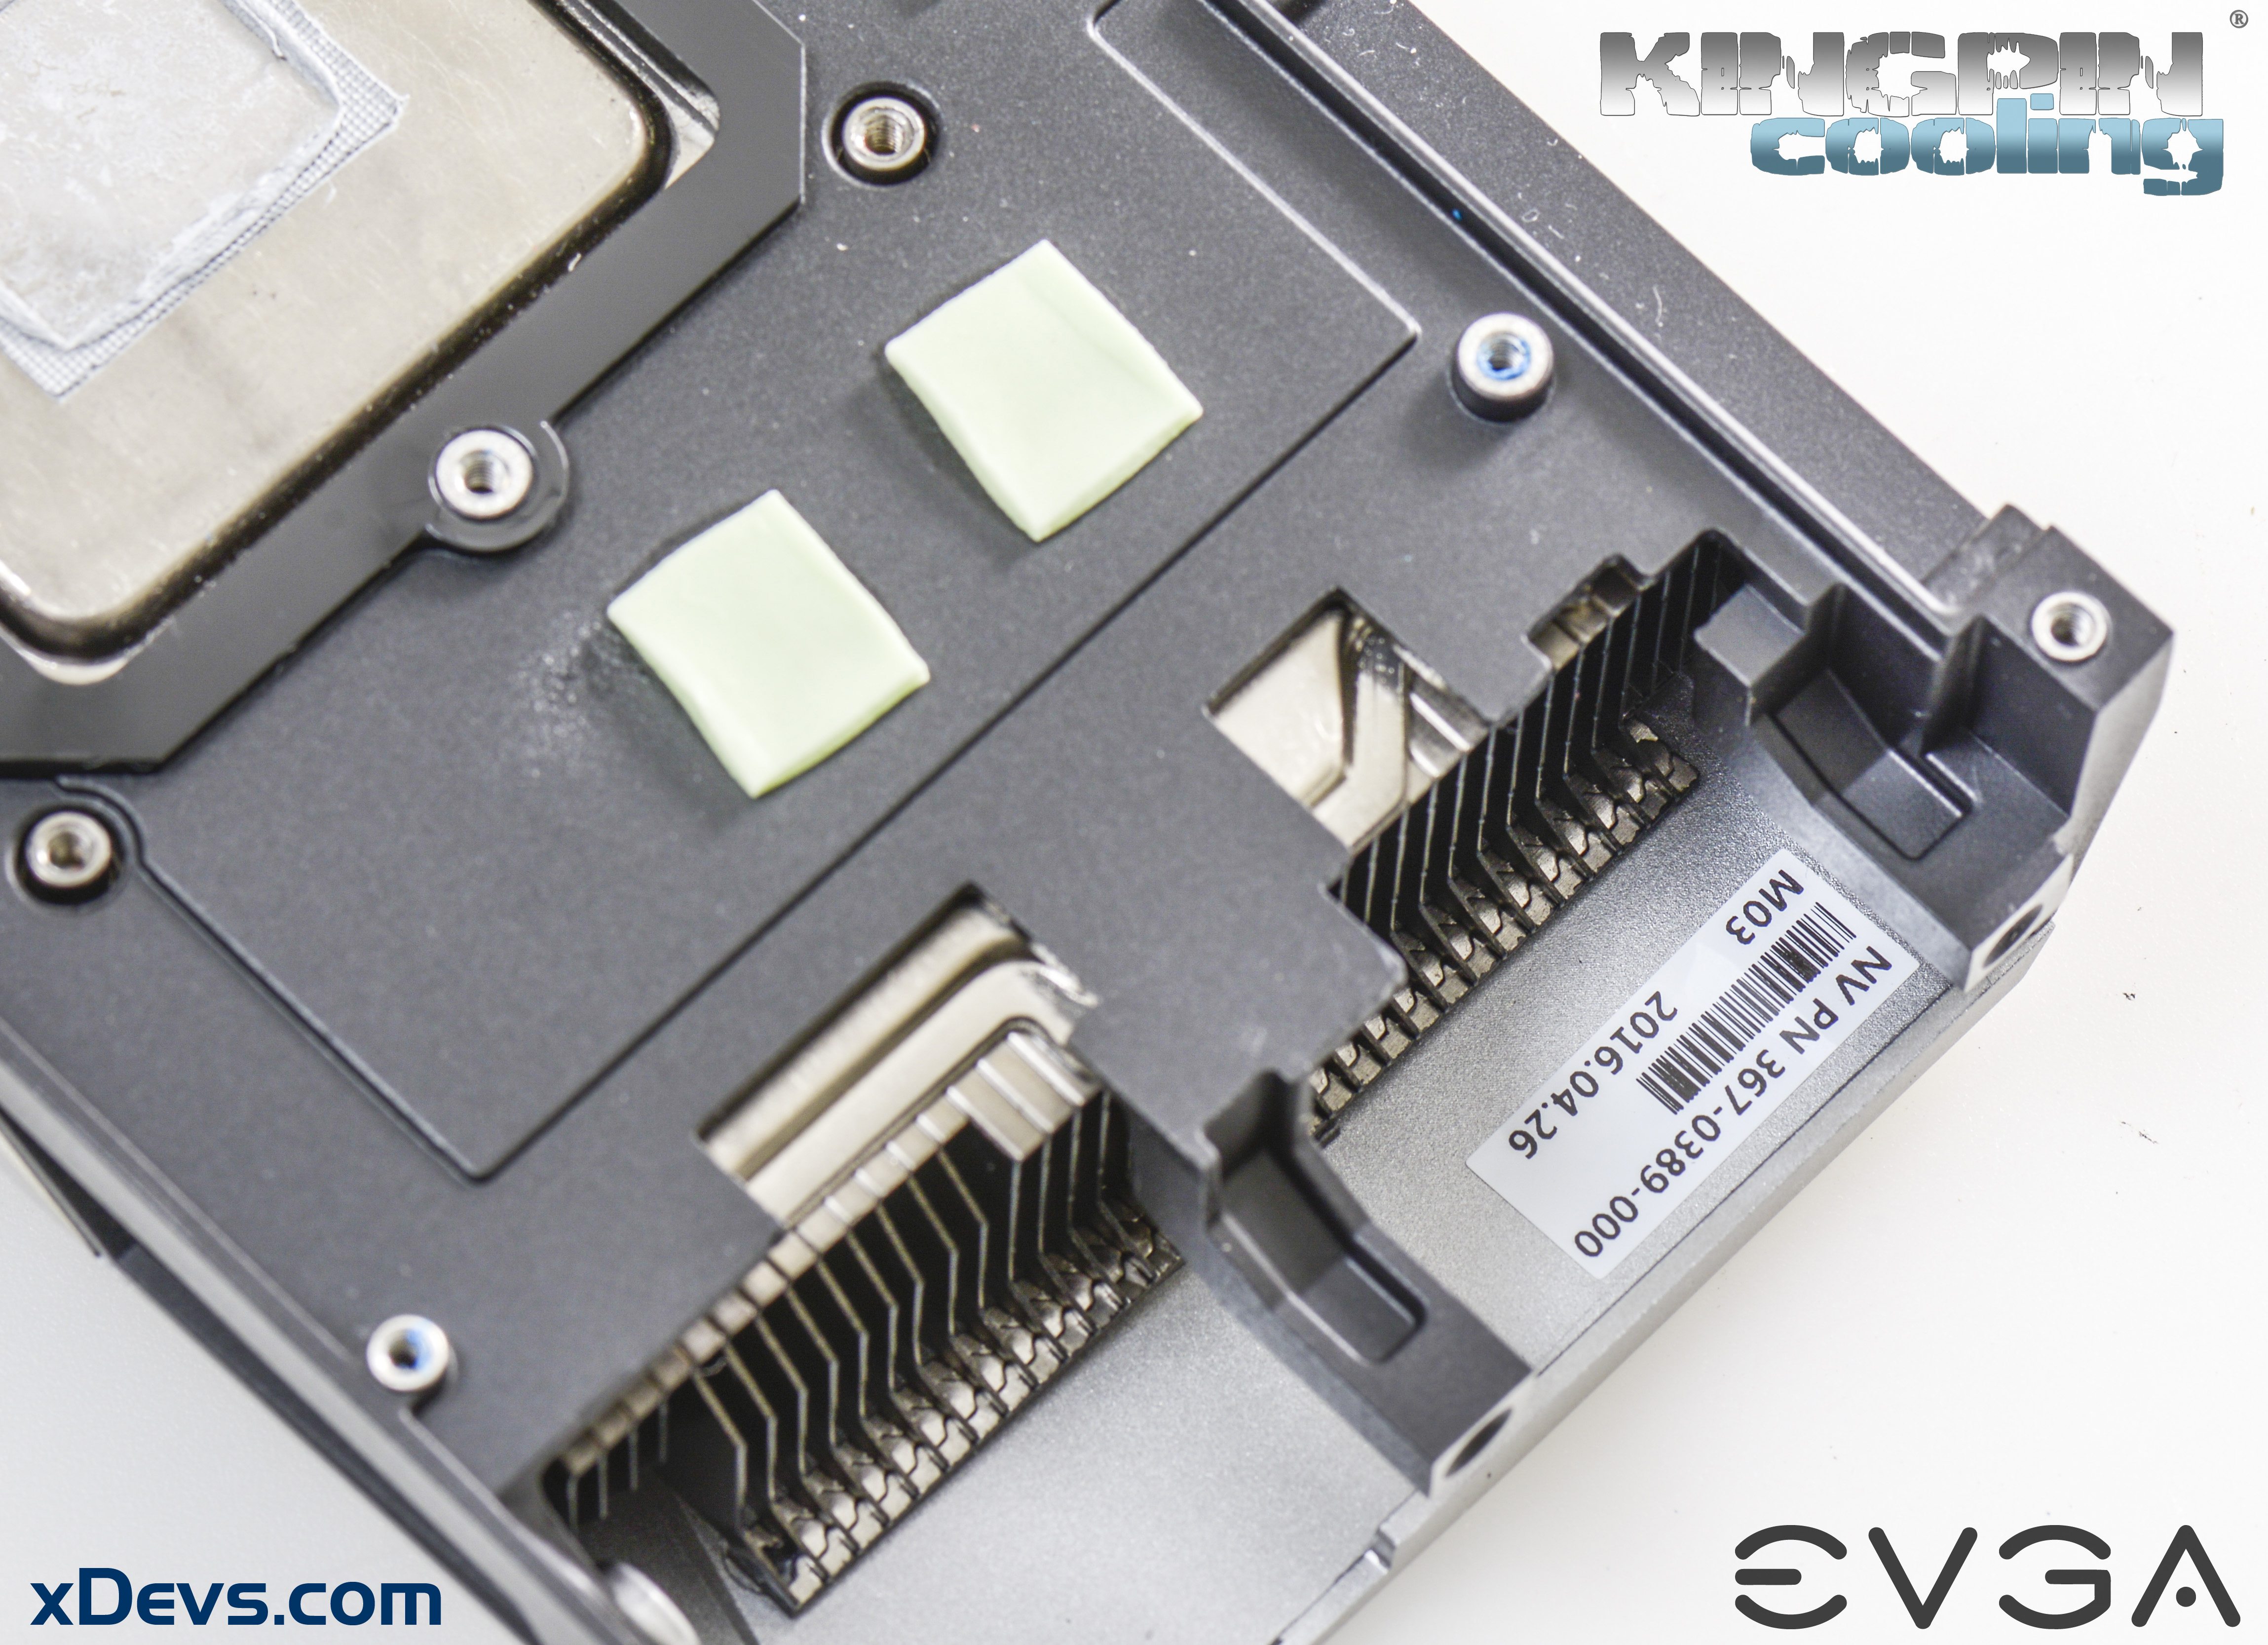 Extreme Oc Modifications For Evga Geforce Gtx 1080 1070 Fe Gives Mindf Movies A New Meaning Hacks Mods Circuitry Image 9 10 Heatsink After Removal From The Card